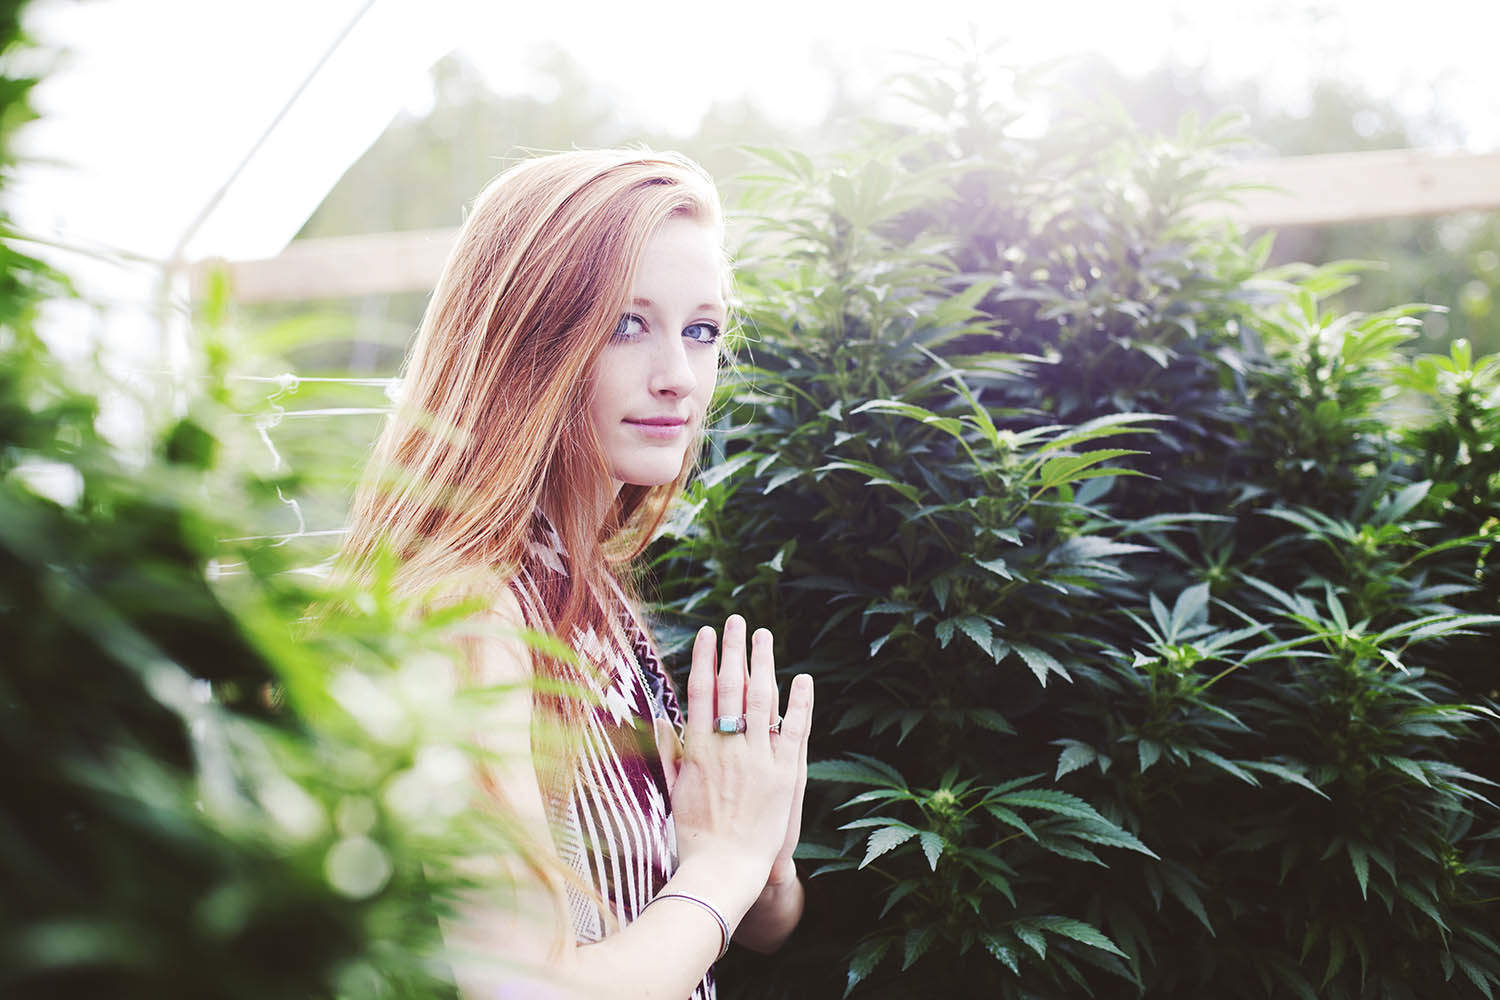 Weed Pray Love – How Cannabis Use Has Shaped Our World